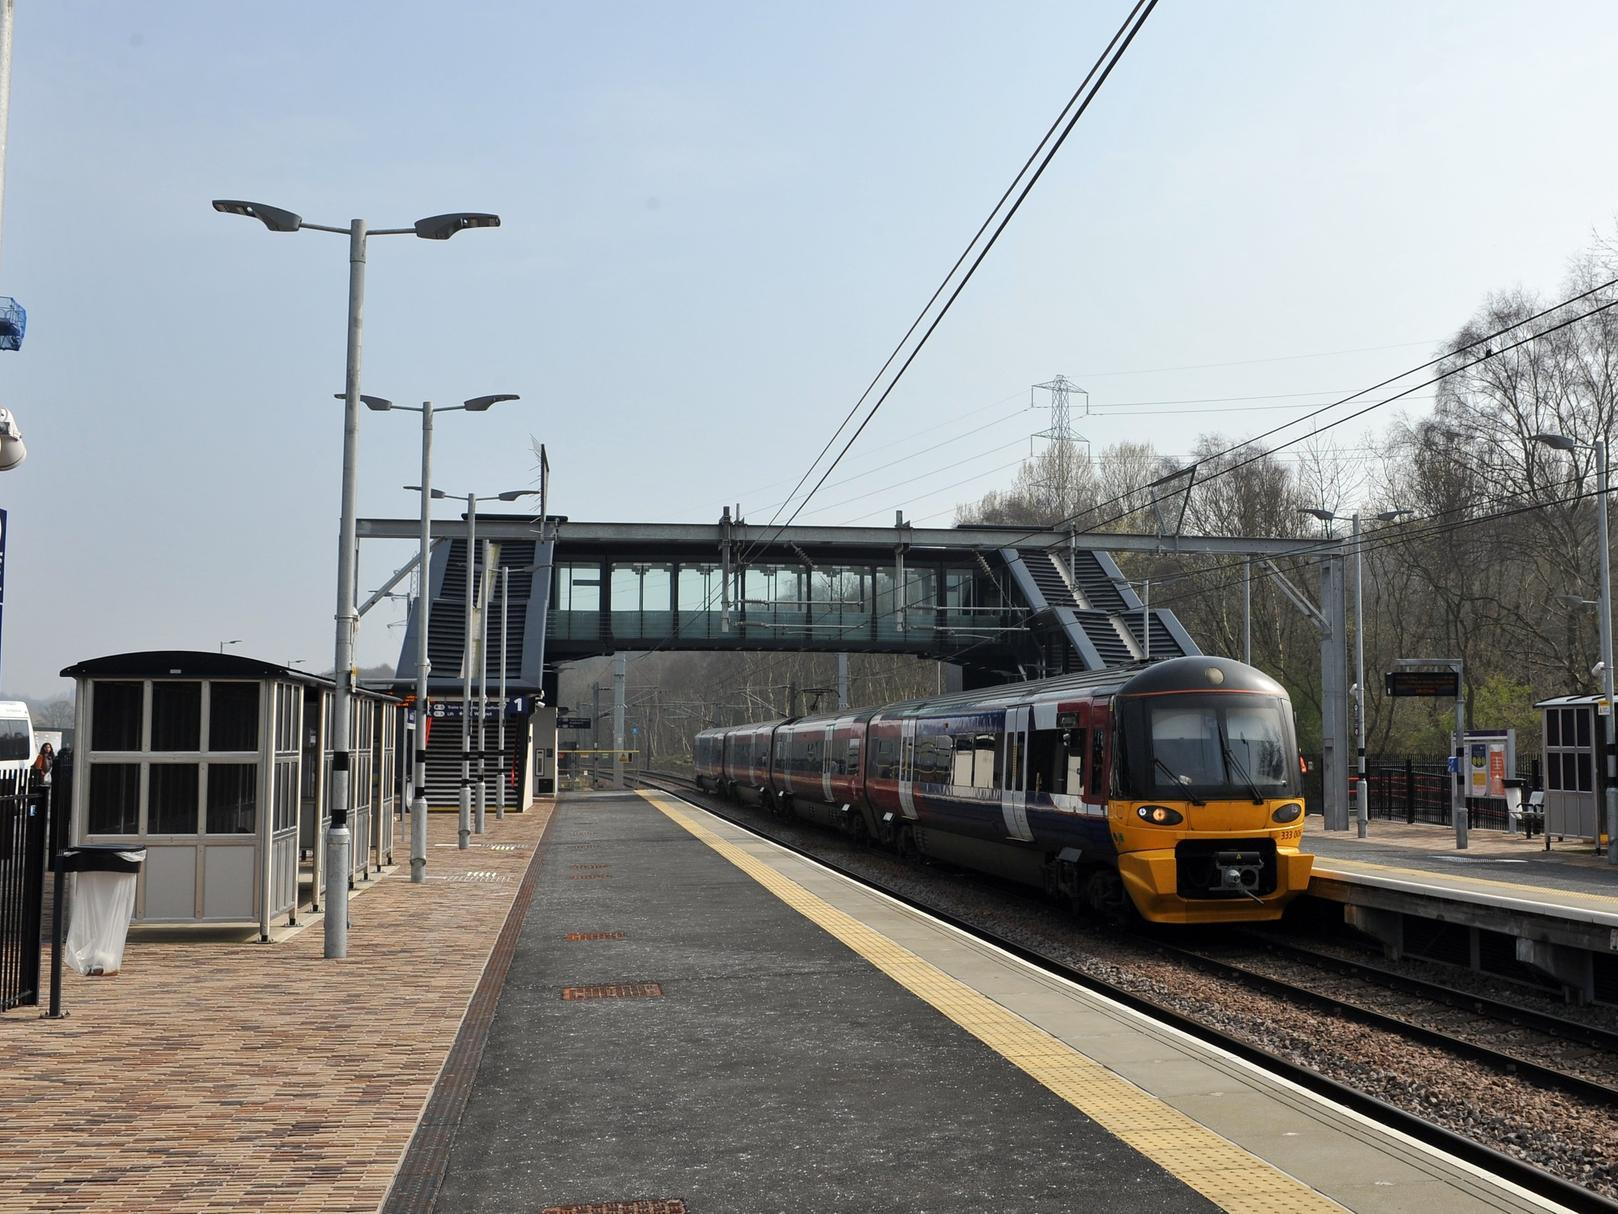 Police confirm man has died after being struck by a train in Leeds